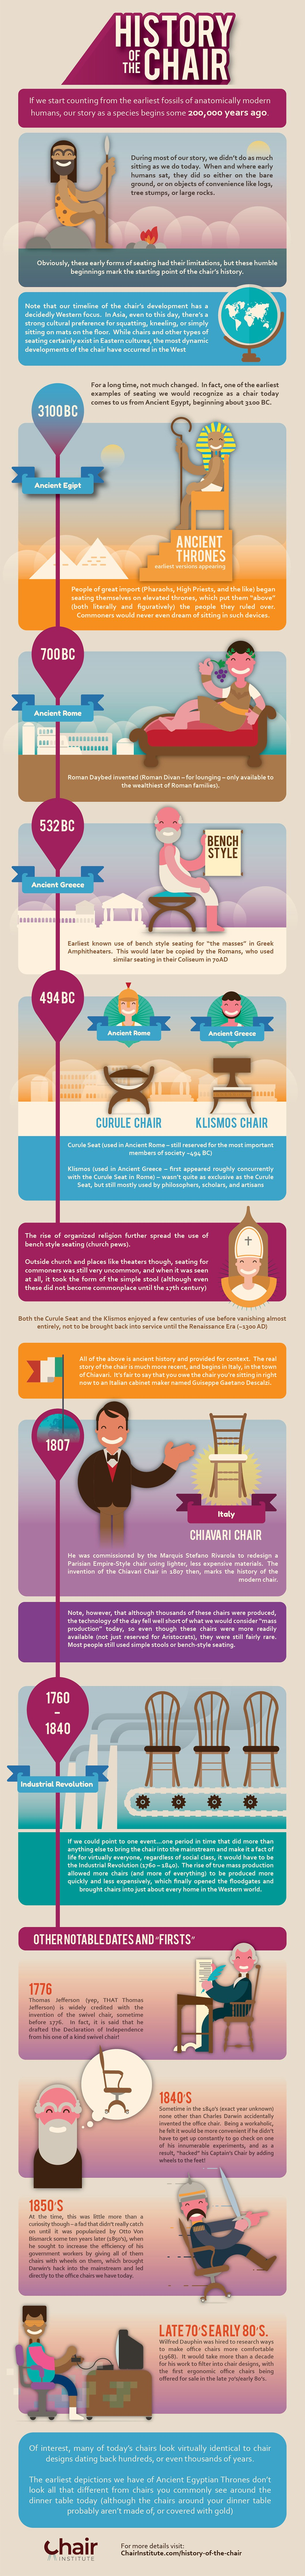 Infographic about the History of the Chair, by ChairInstitute.com